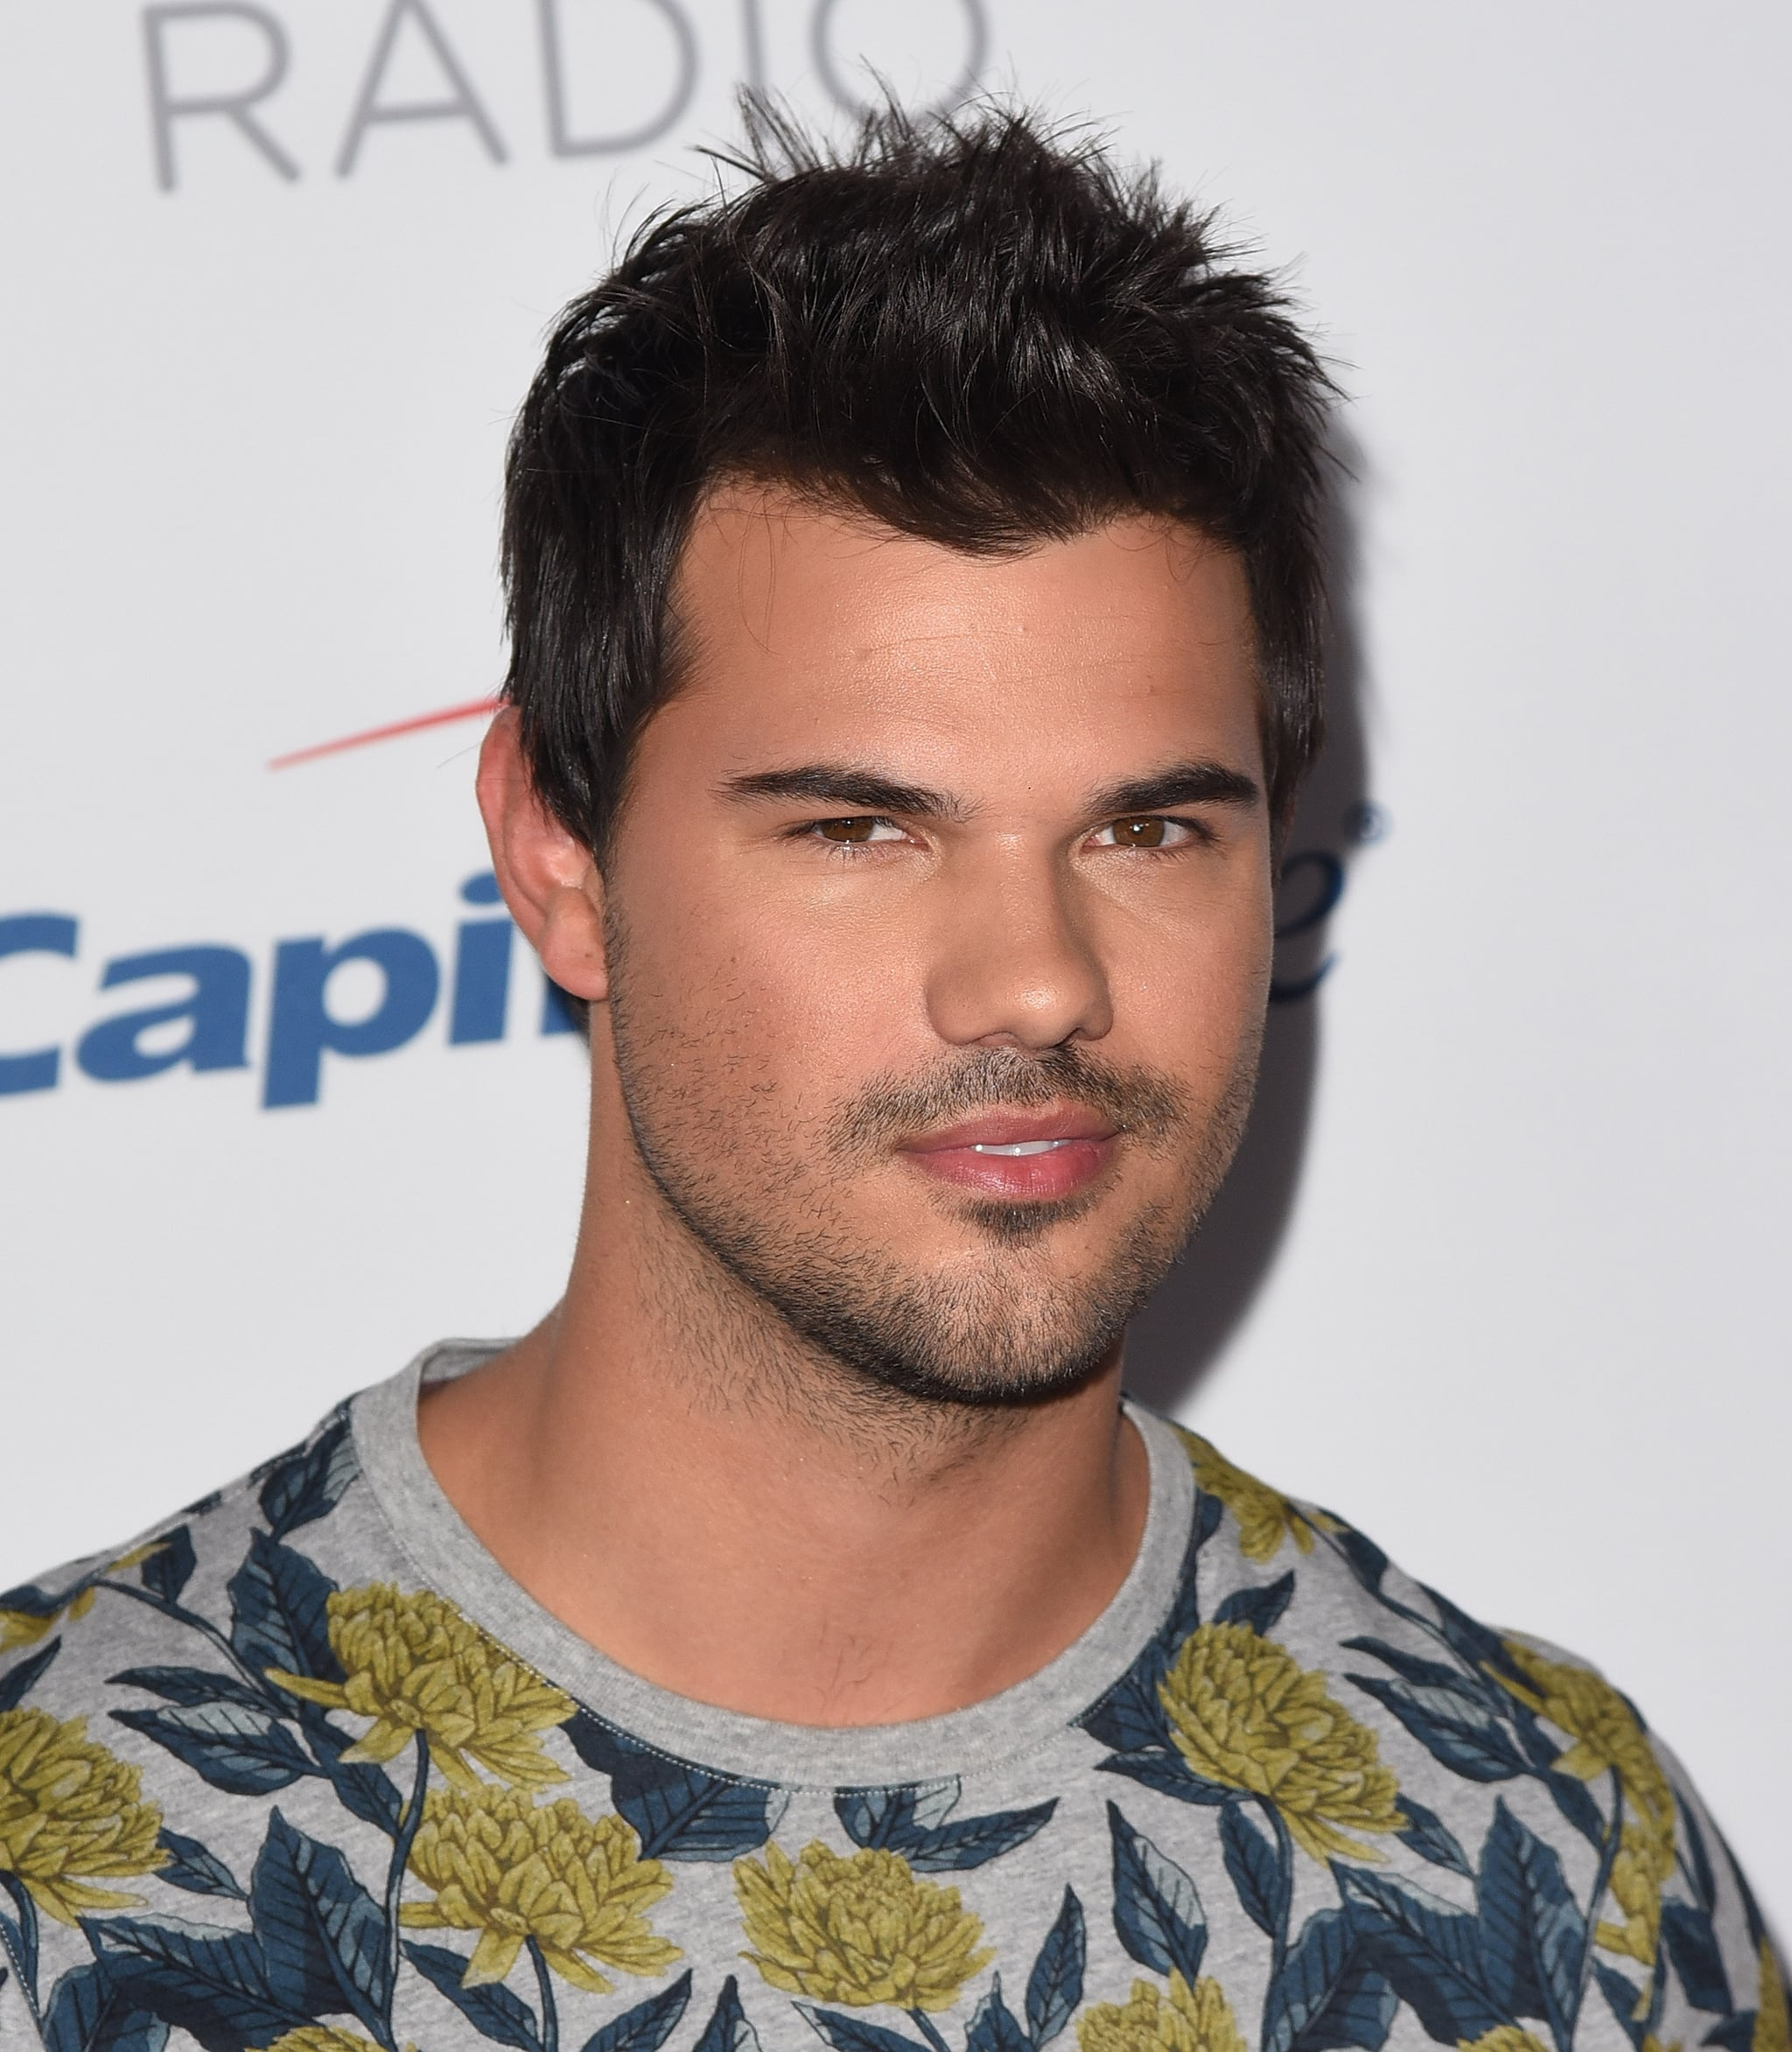 Taylor Lautner Now